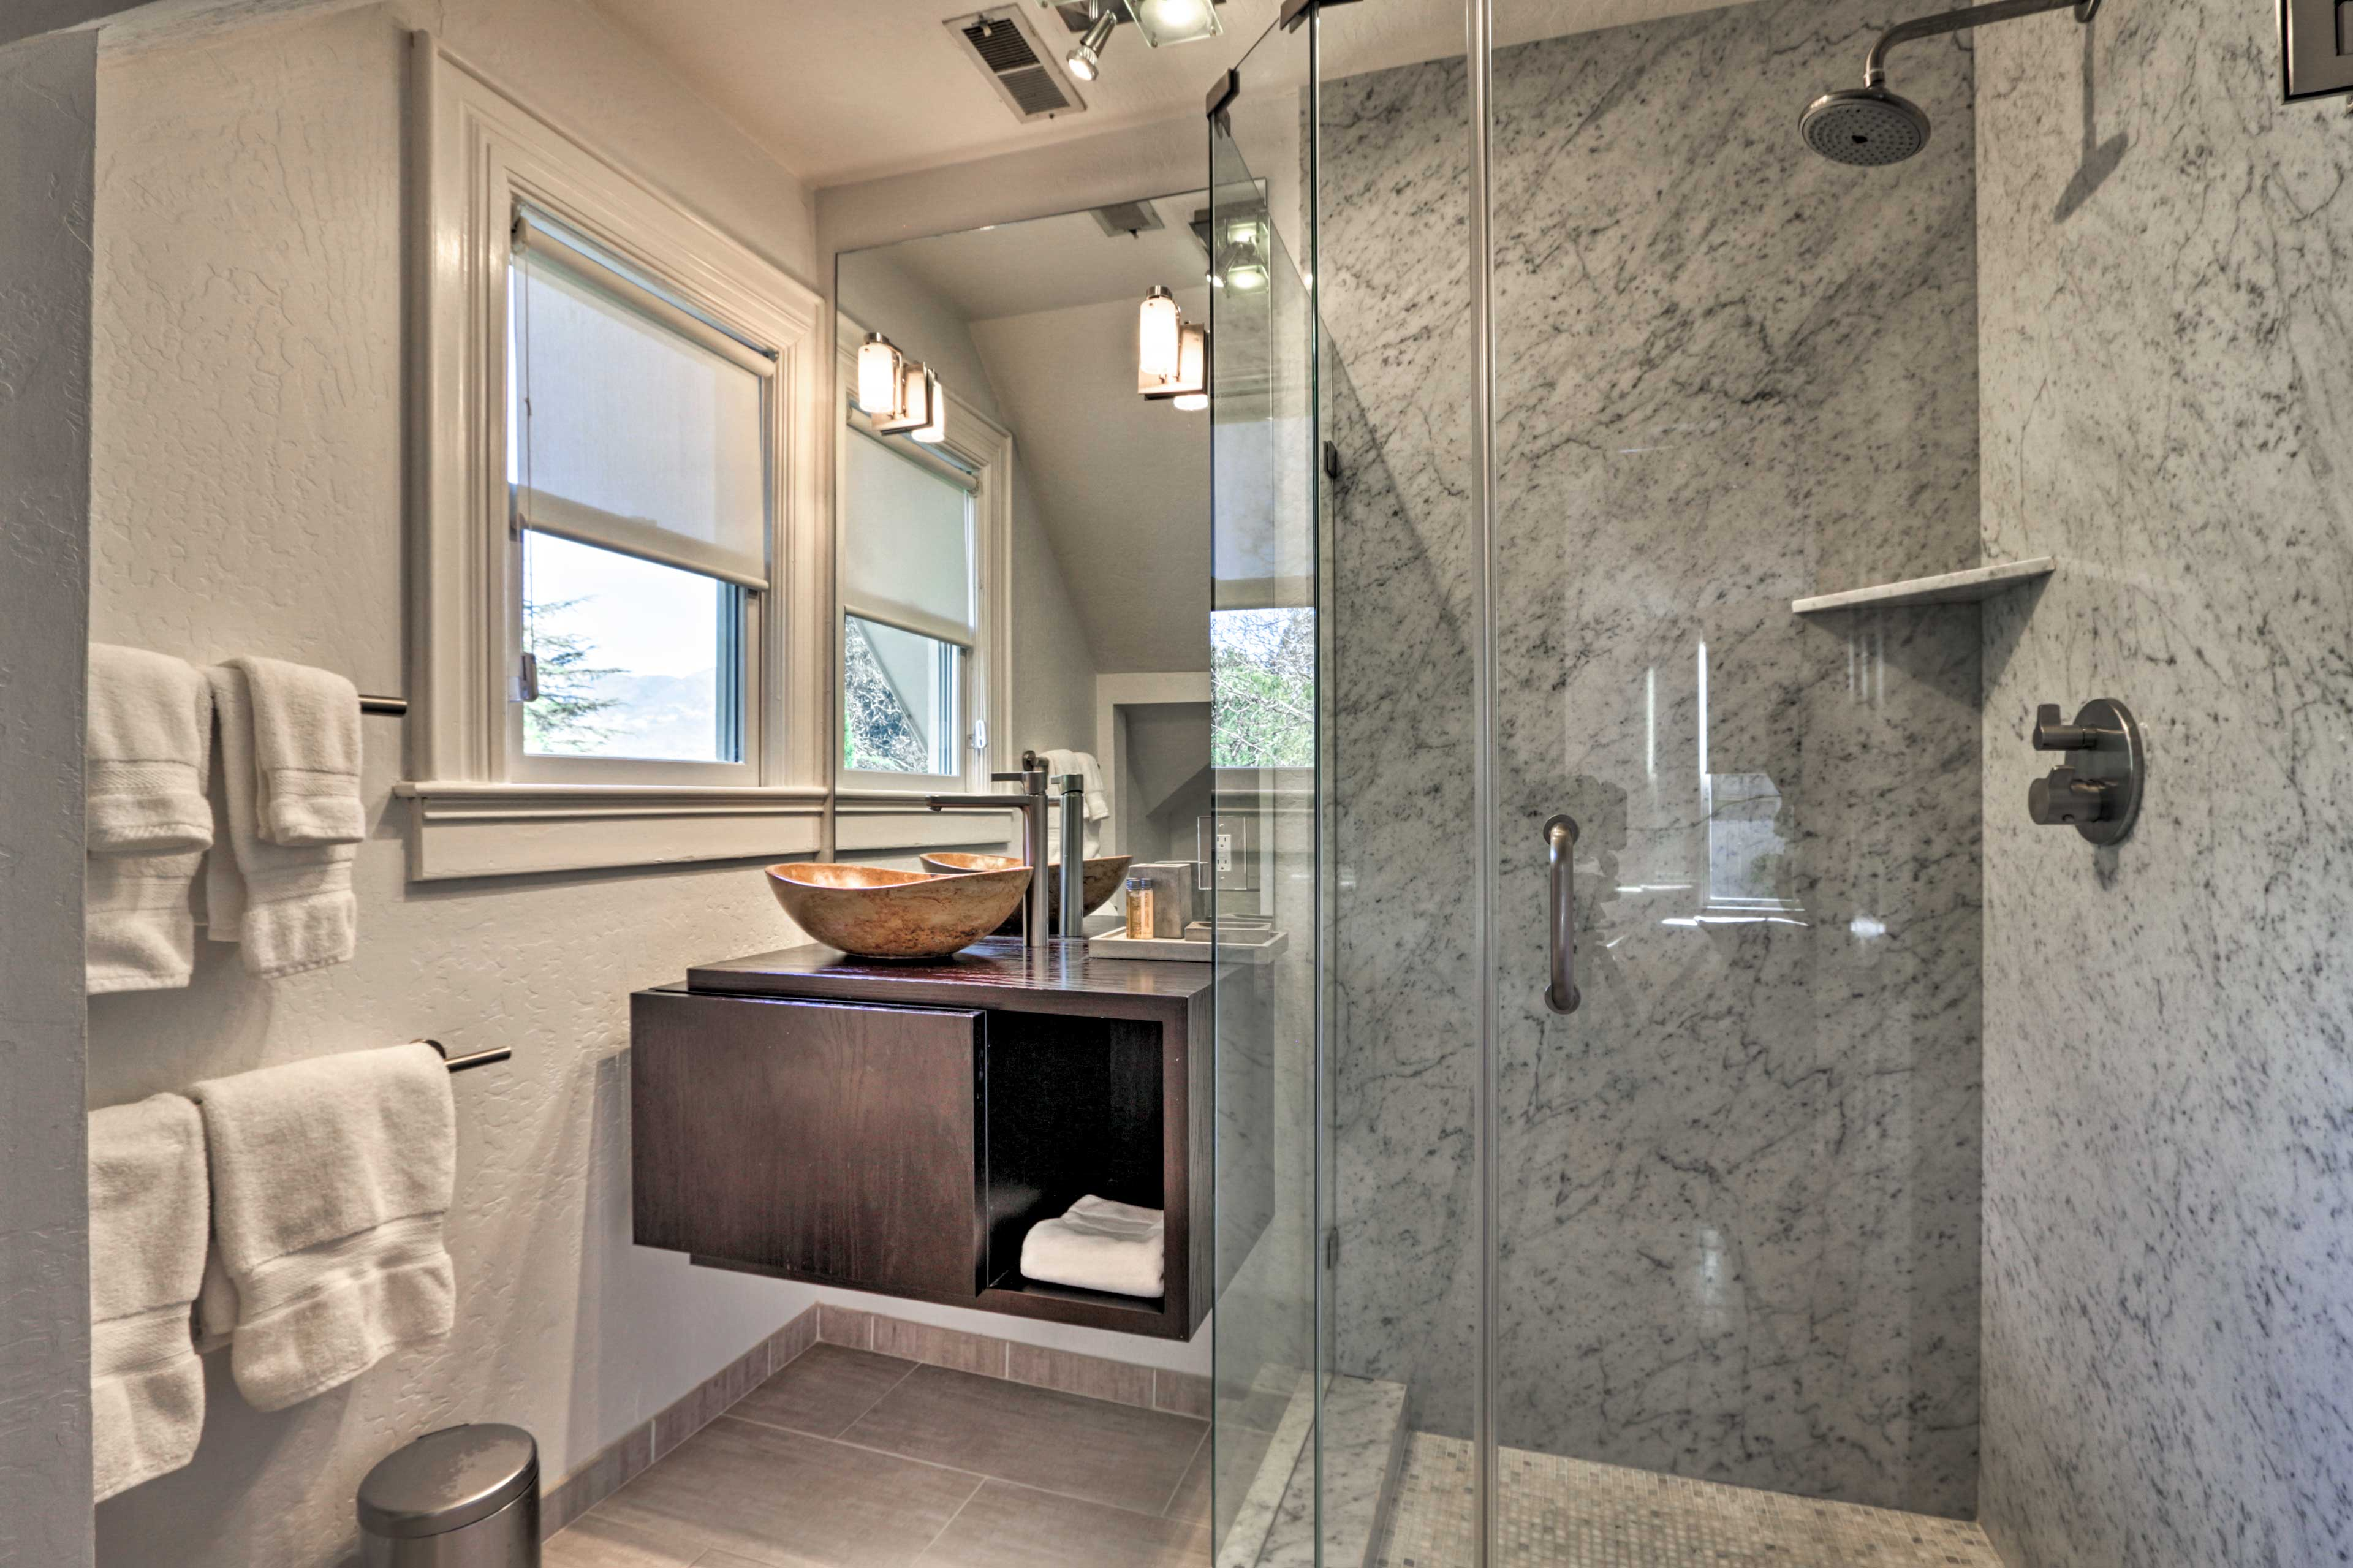 Enjoy a warm shower and dry off with fresh towels.